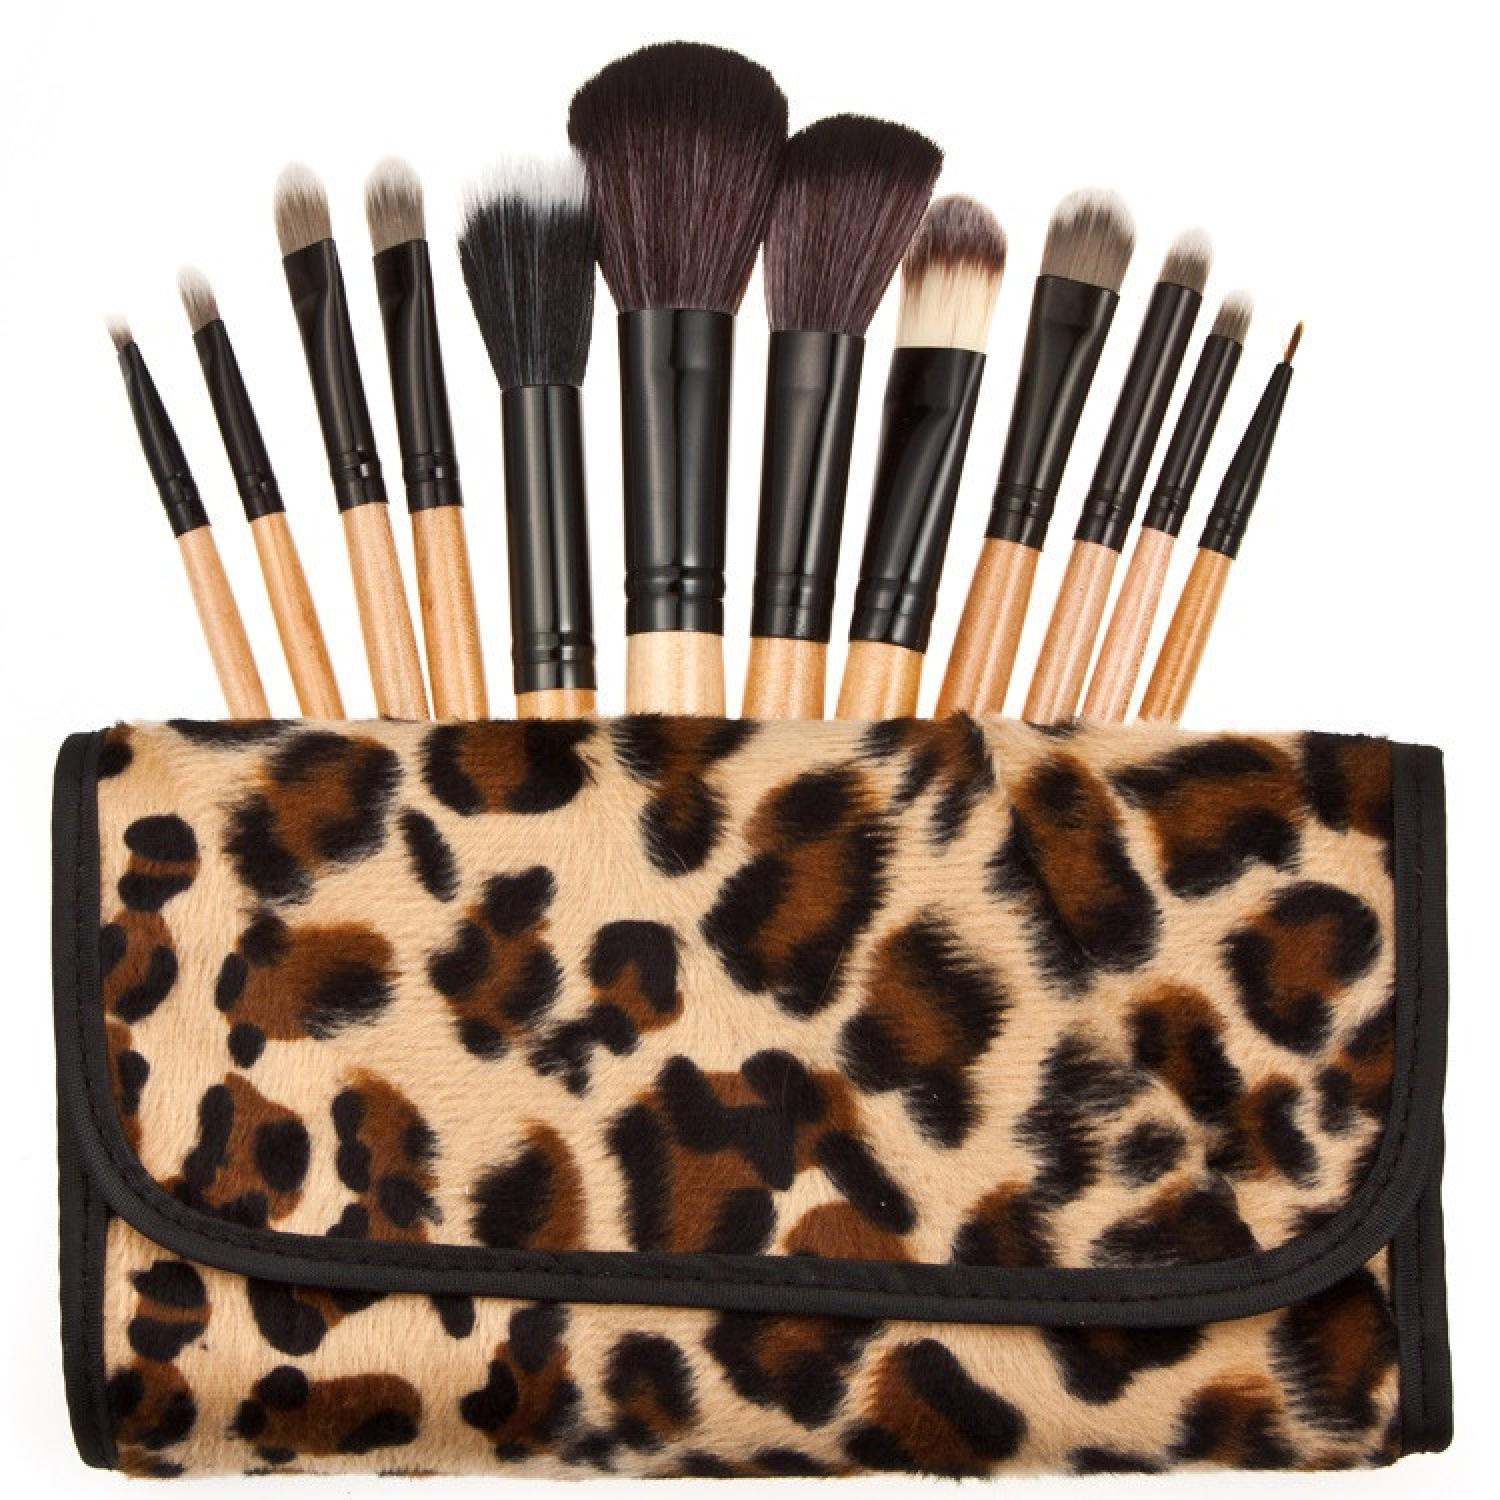 Brush Make Up Kosmetik 12 Set dengan Sarung Leopard Asli Original Murah